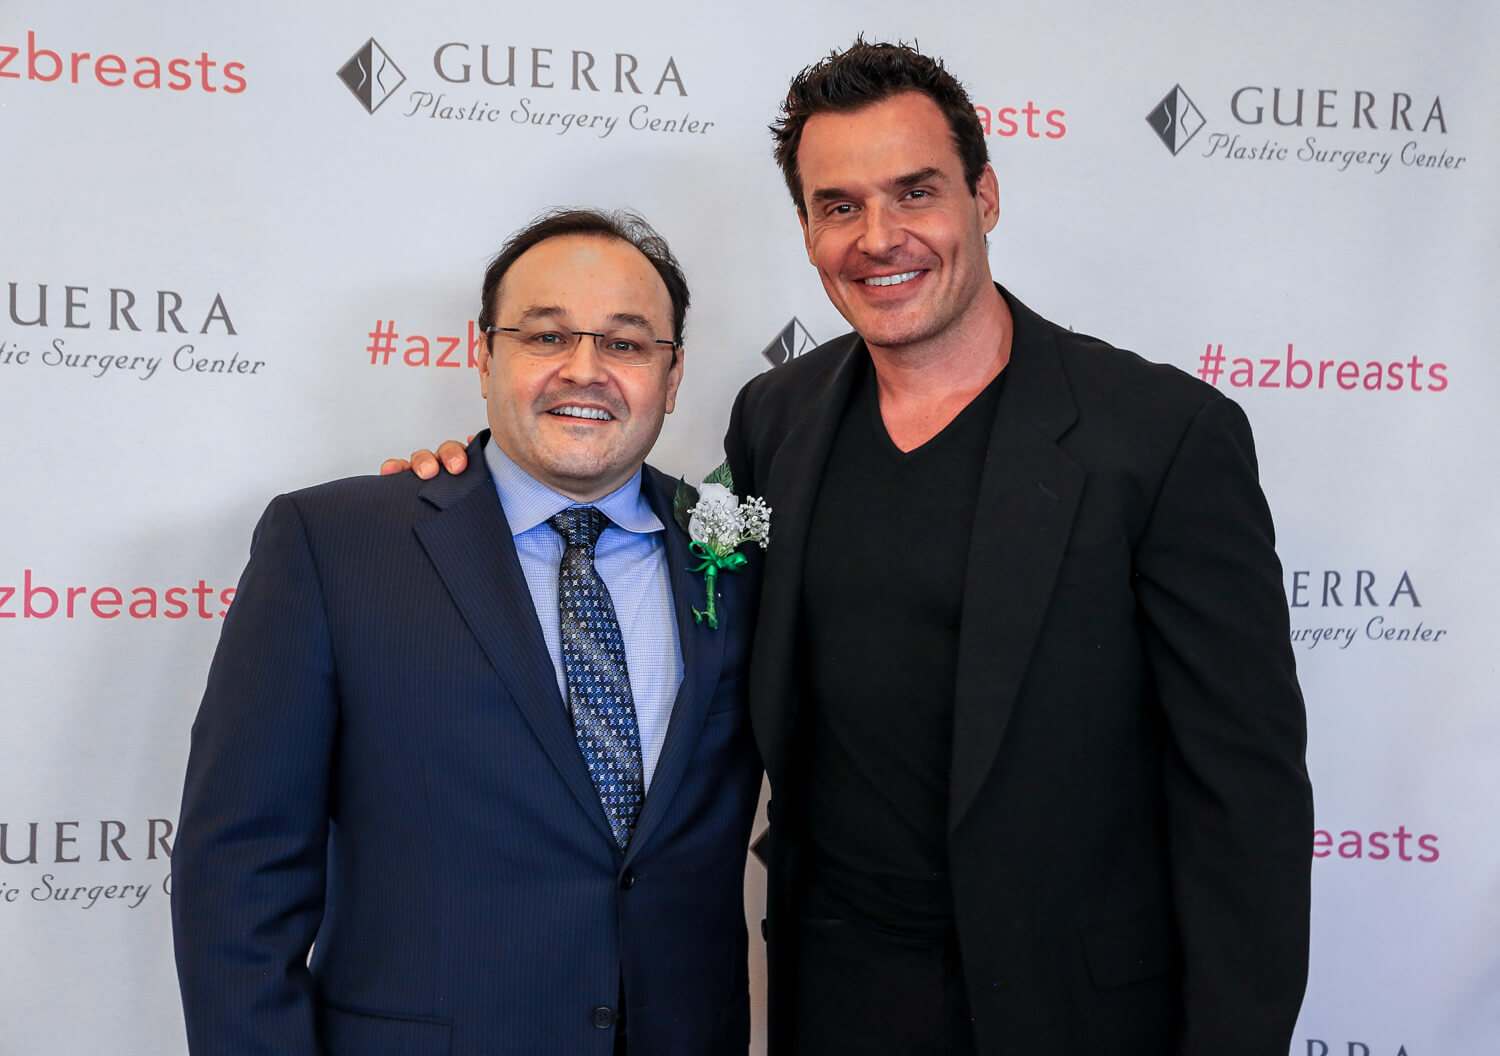 Aldo Guerra and Antonio Sabato at MiraDry Event in Scottsdsale